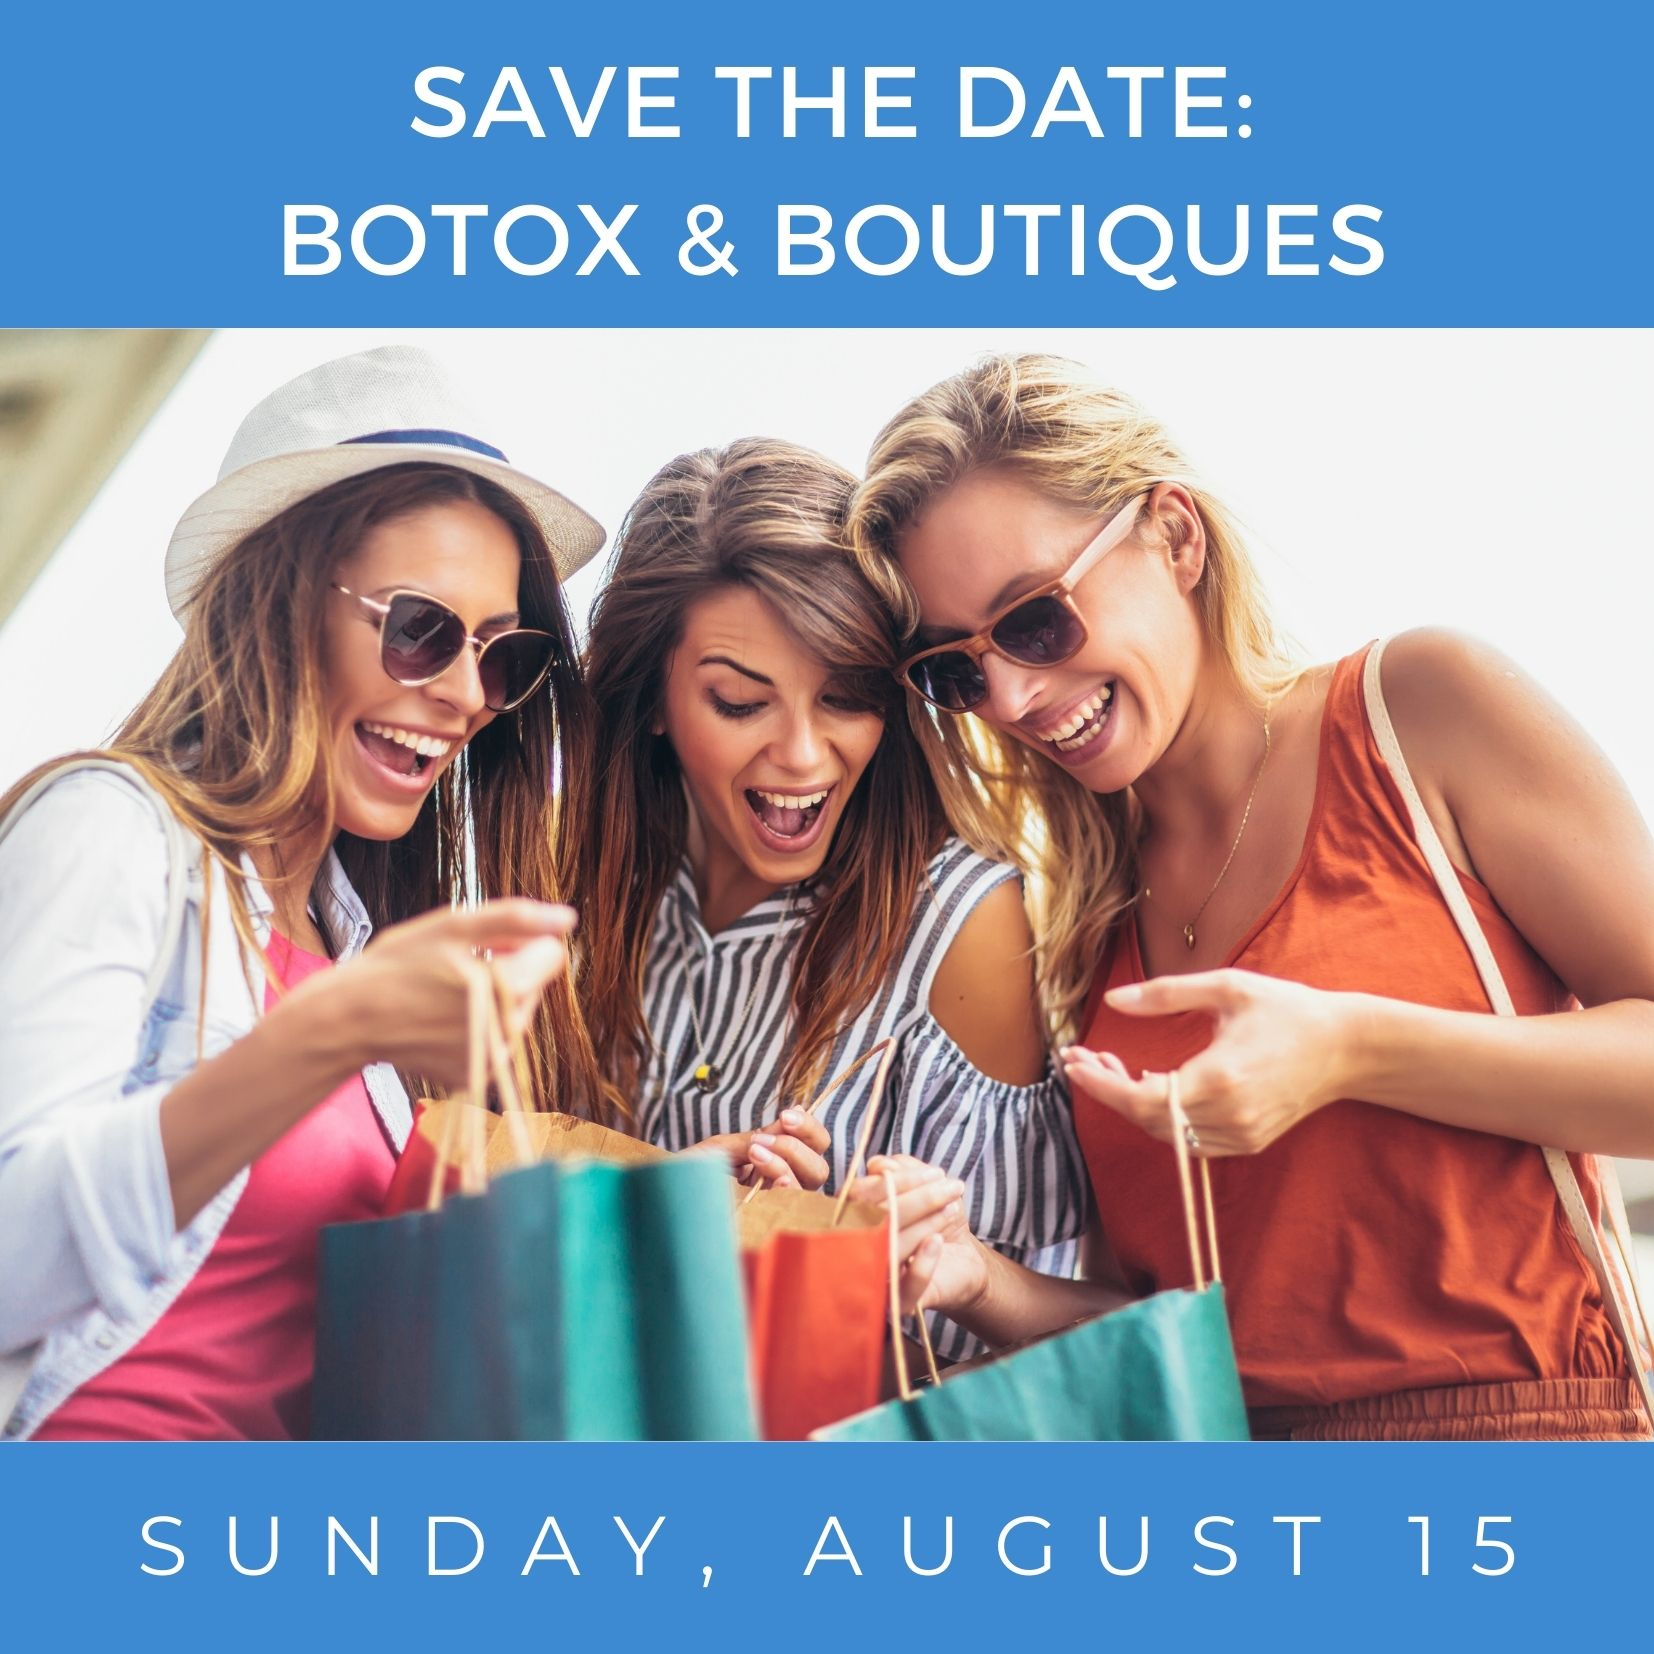 Botox and Boutiques at Azura Skin Care Center